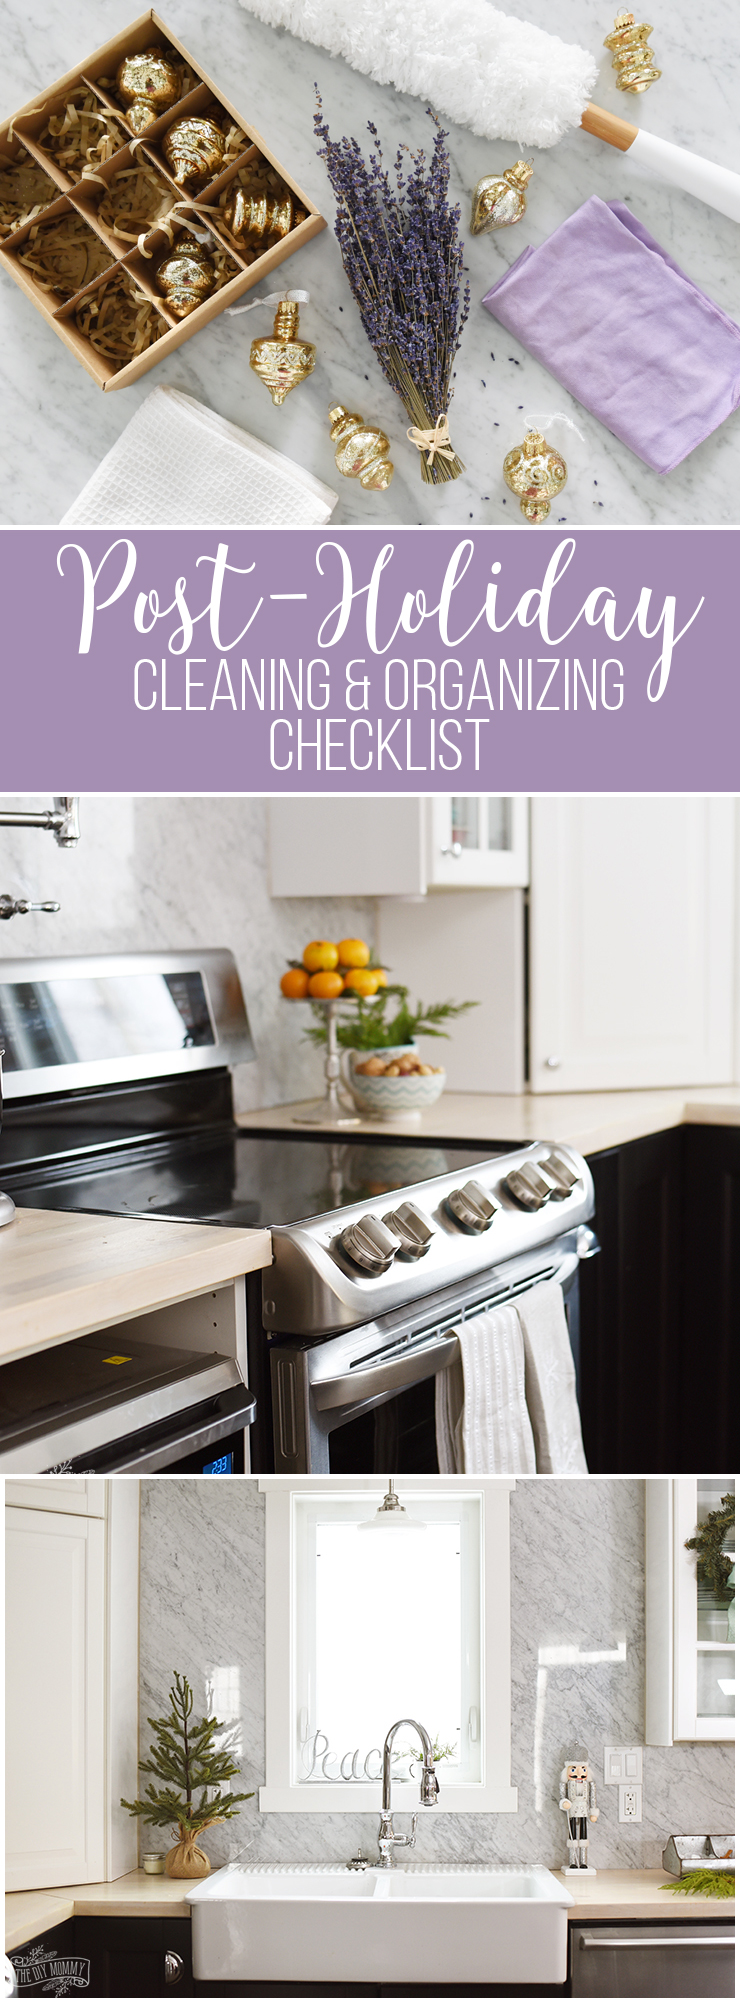 Checklist for Cleaning and Organizing After the Holidays